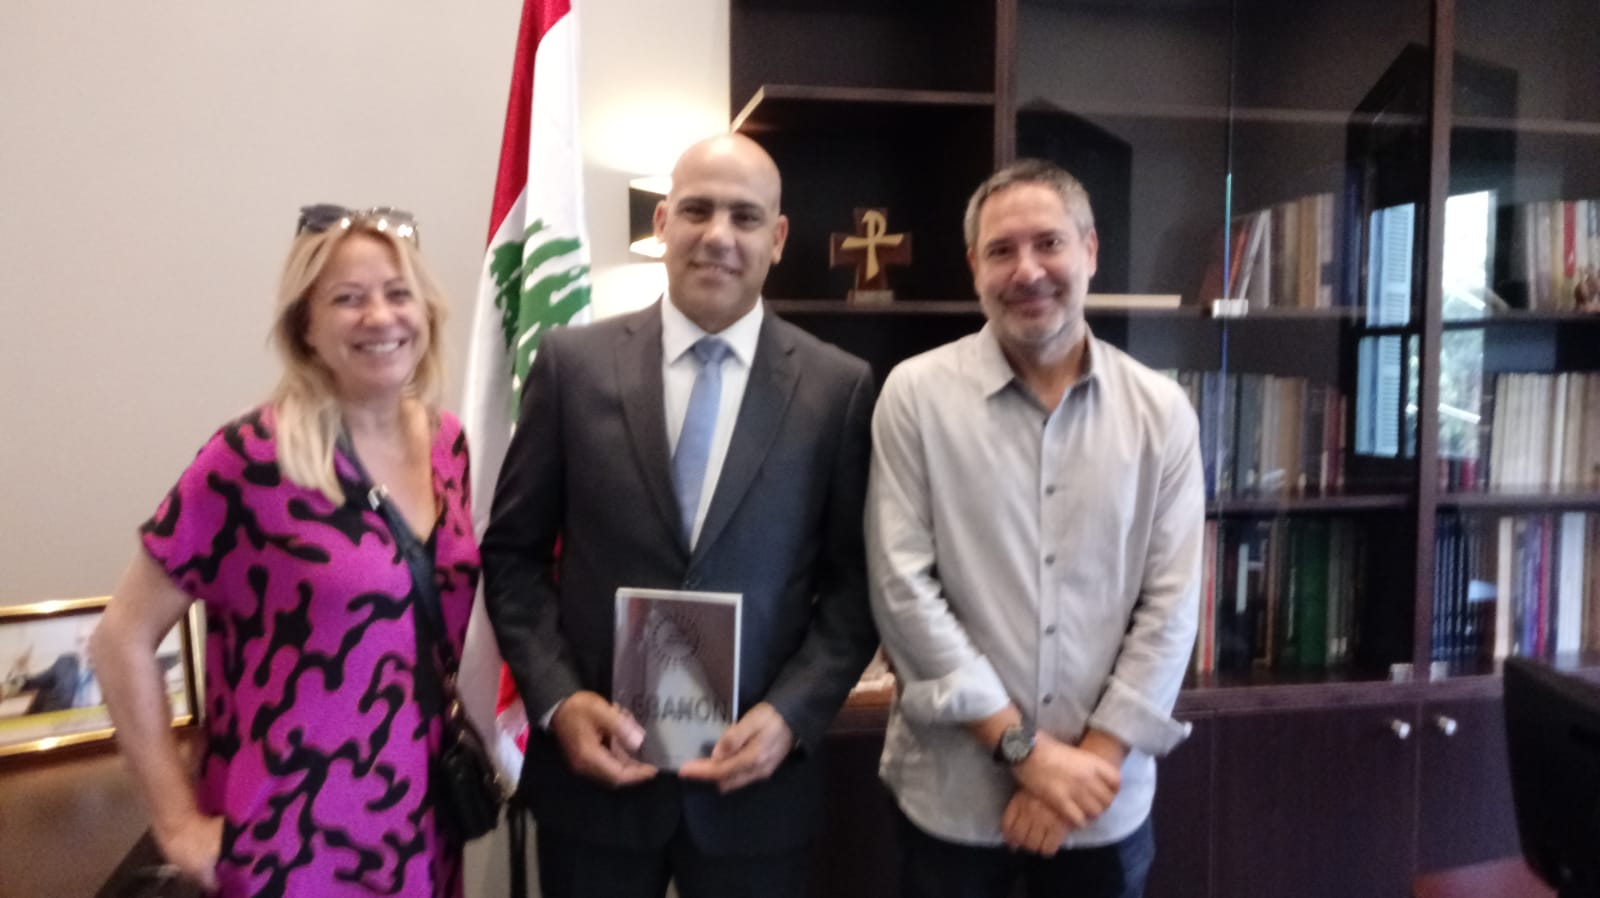 At the Lebanese National Library with Delphine Barets (left), Co-Founder Those Who Inspire, Hassan Akra (centre), Chairman Lebanese National Library, and Alejandro Andrés (right), Director of Those Who Inspire Lebanon © Those Who Inspire